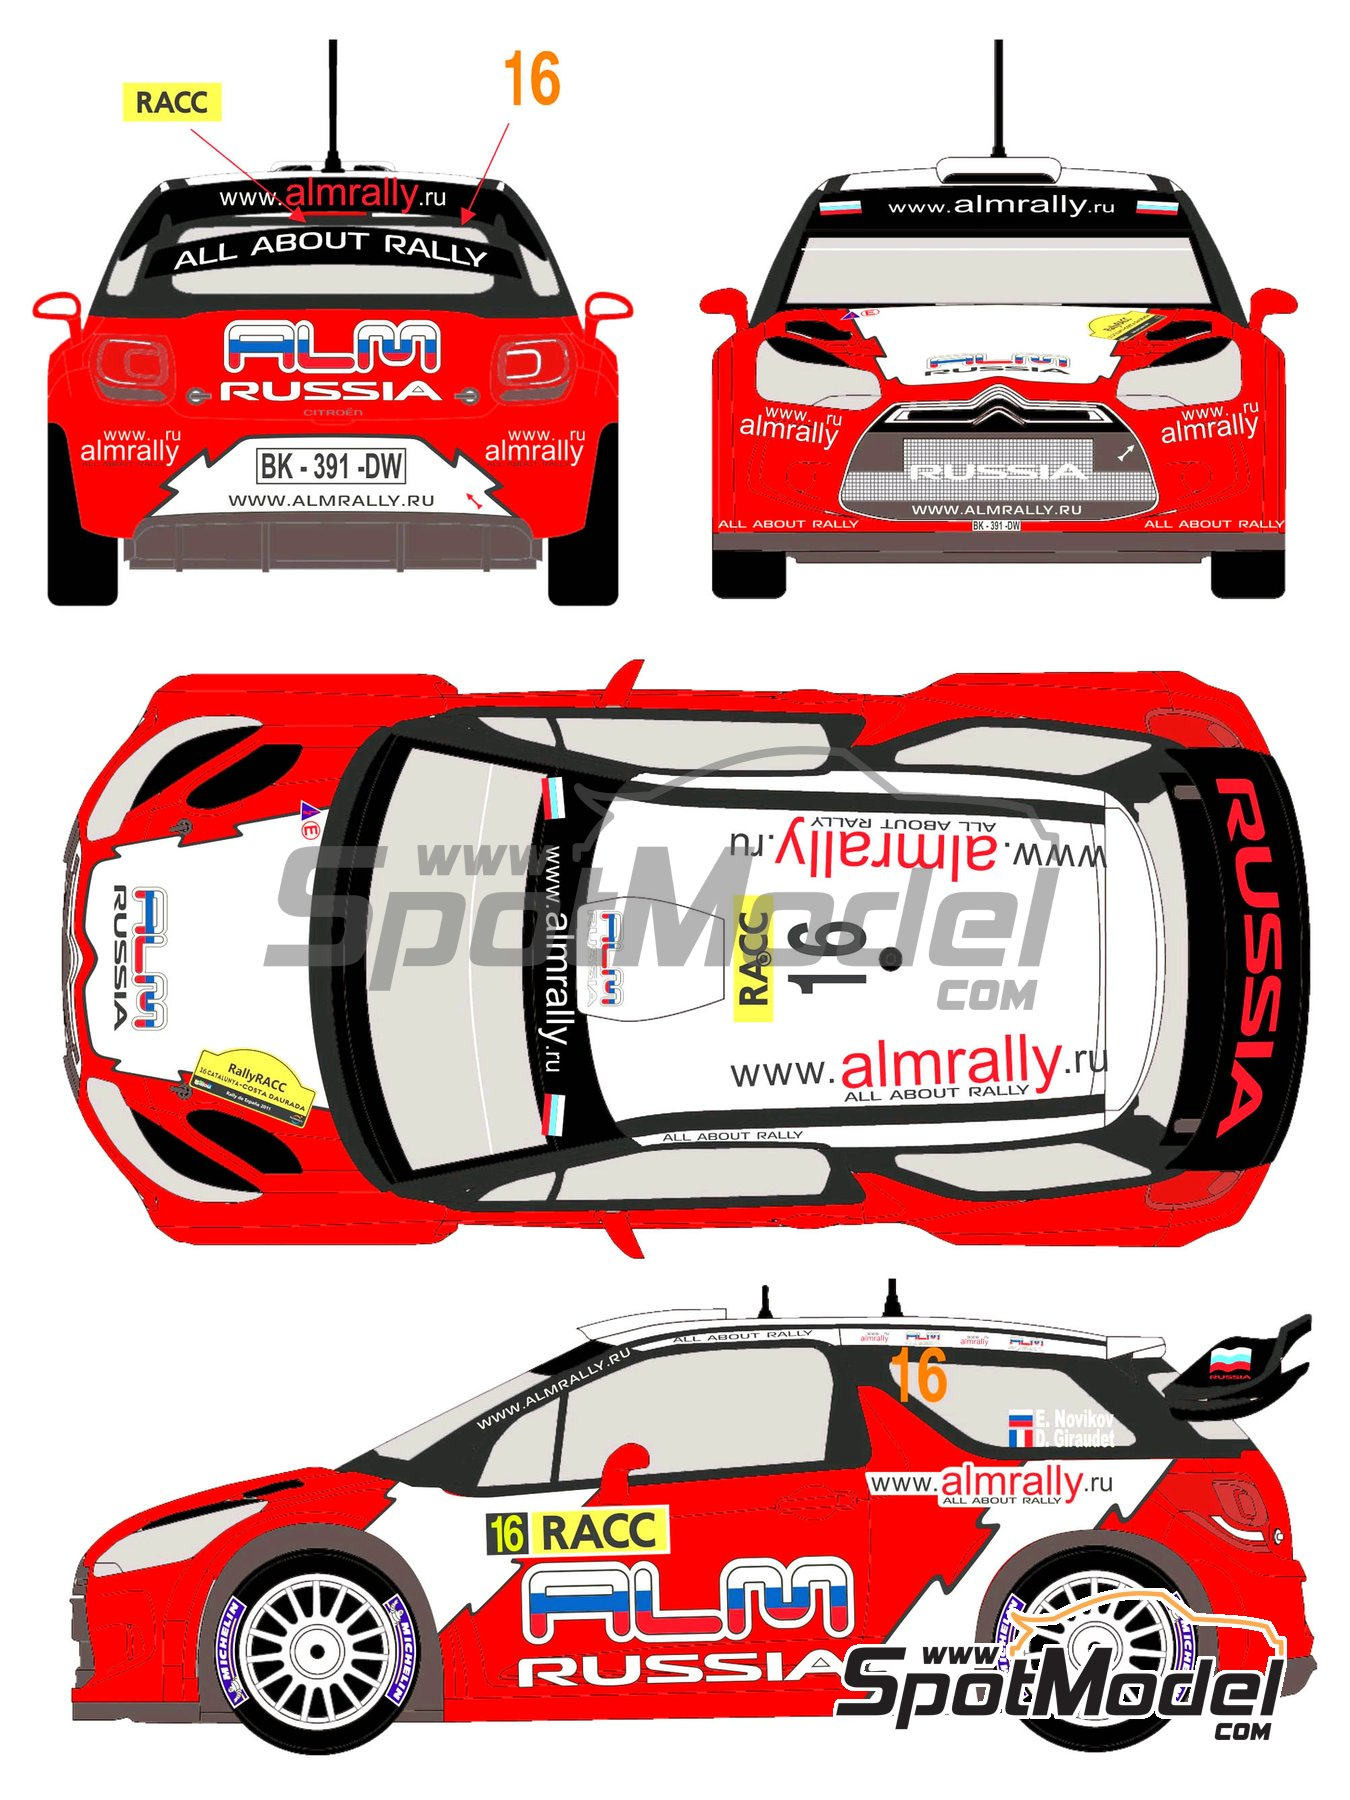 Citroen DS3 WRC Novitec ALM Russia - Catalunya Costa Dorada RACC Rally 2012 | Decals in 1/24 scale manufactured by Racing Decals 43 (ref. RD24-006) image